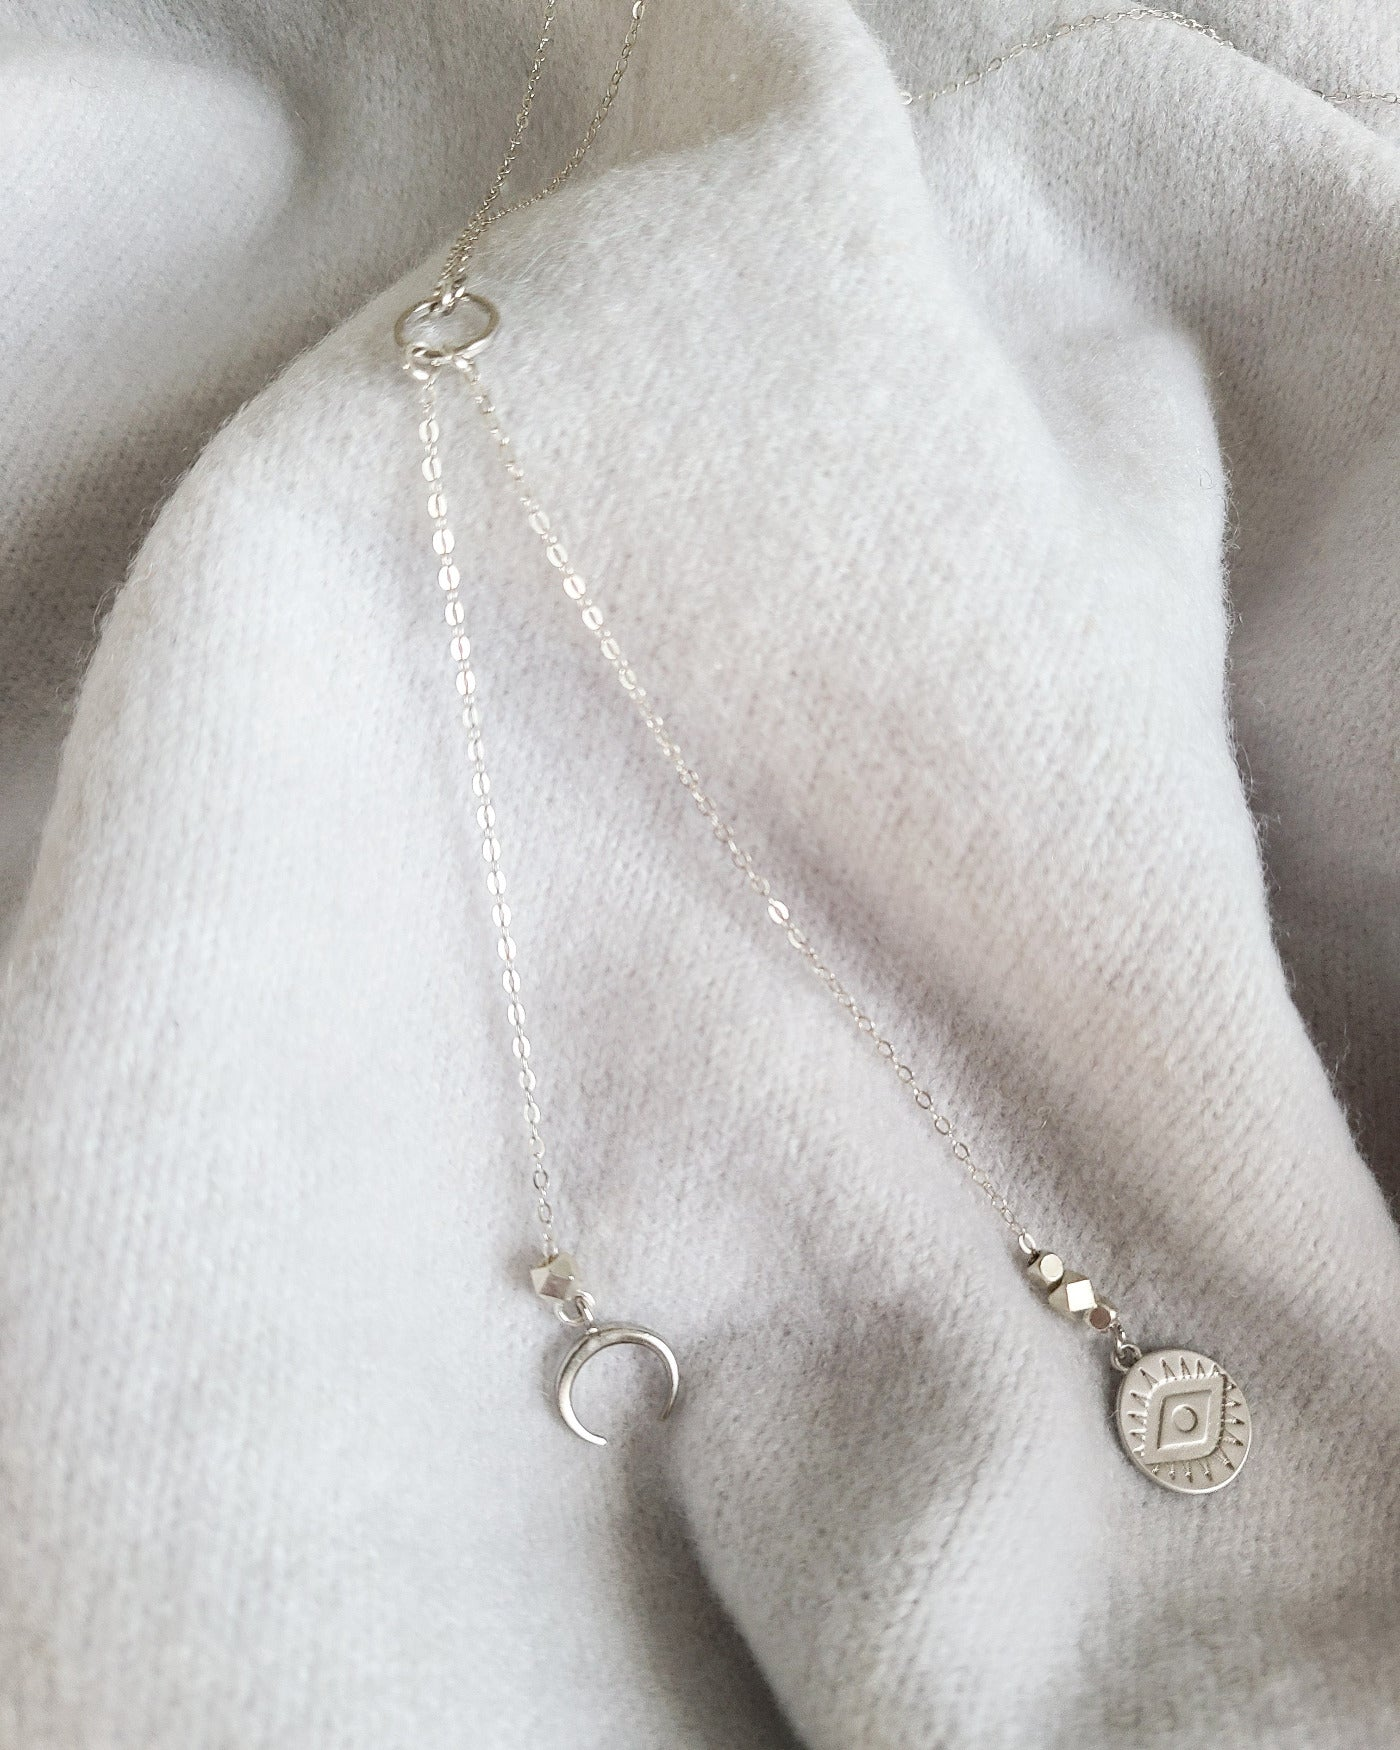 "Your Darkness Defines The Light Necklace is a total of 31.5 inches long. It features a long delicate sterling silver chain and two small 12cm silver charms (Evil Eye and Crescent Moon).   It is 26"" to the round connector and an additional 5.5"" drop from the connector."